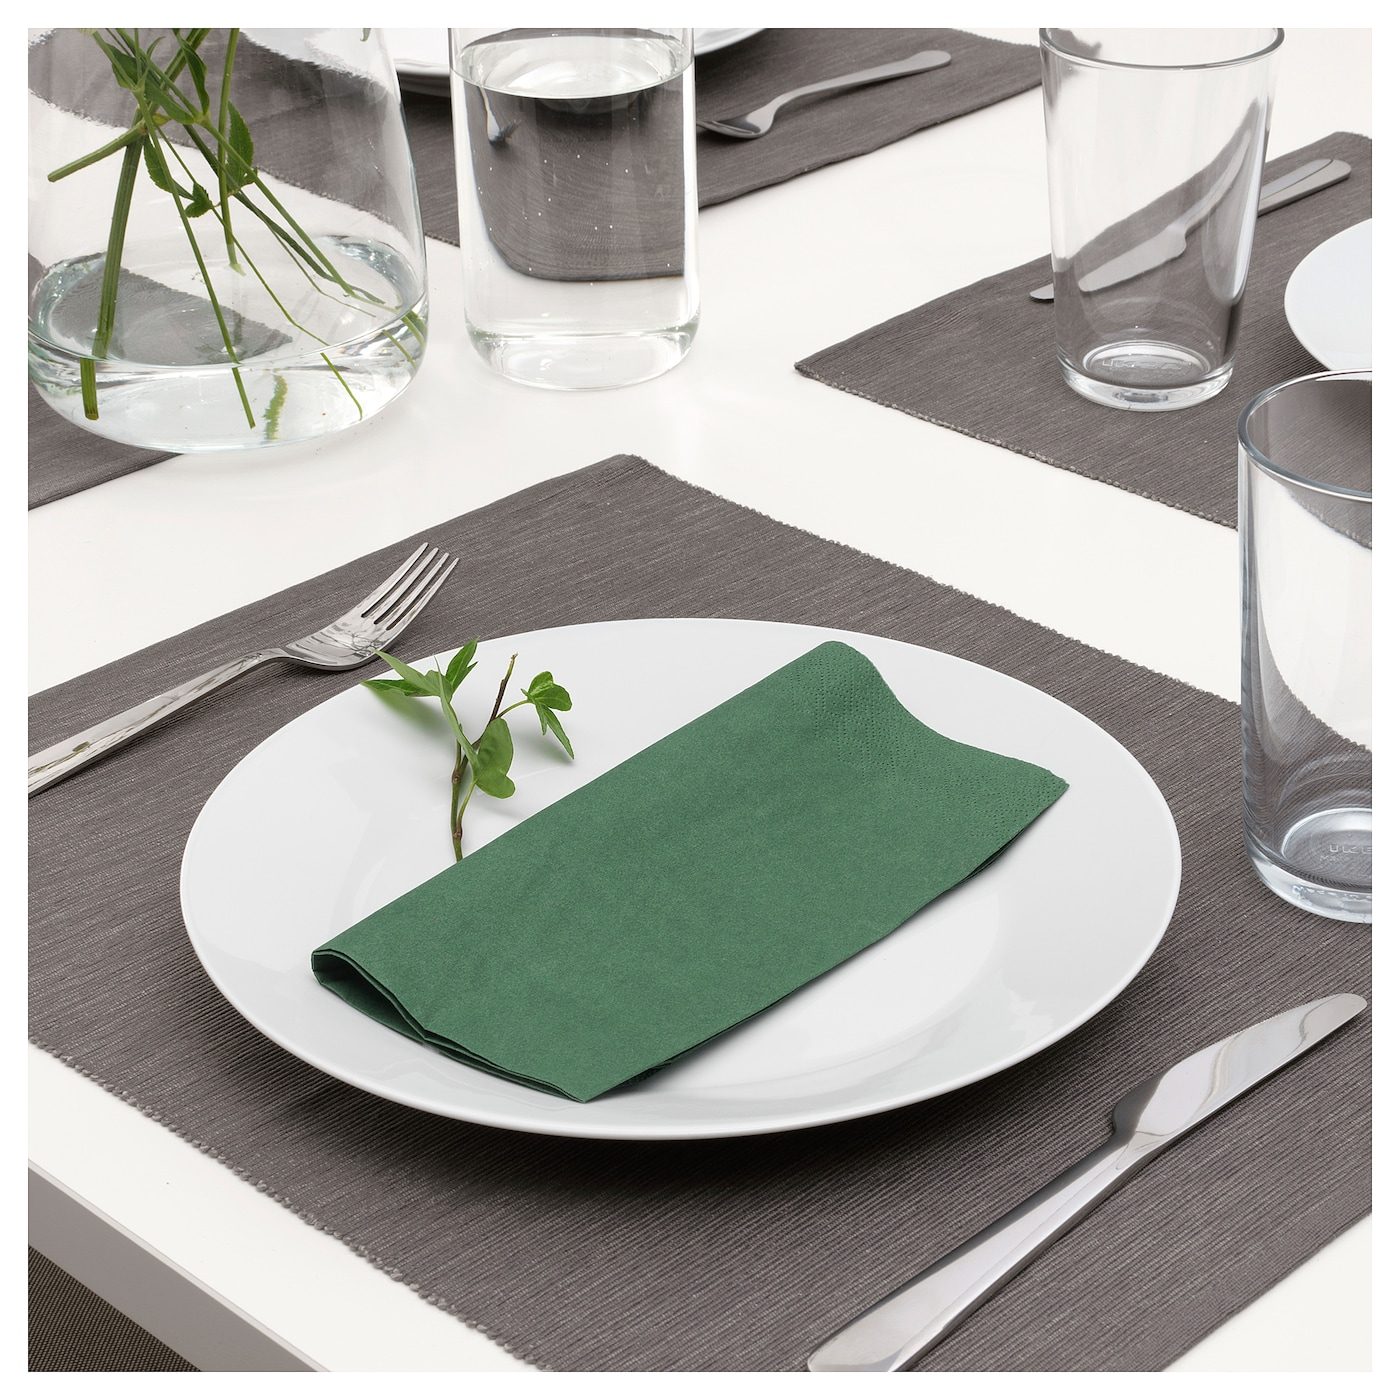 Ikea Fantastisk Paper Napkin The Napkin Is Highly Absorbent Because